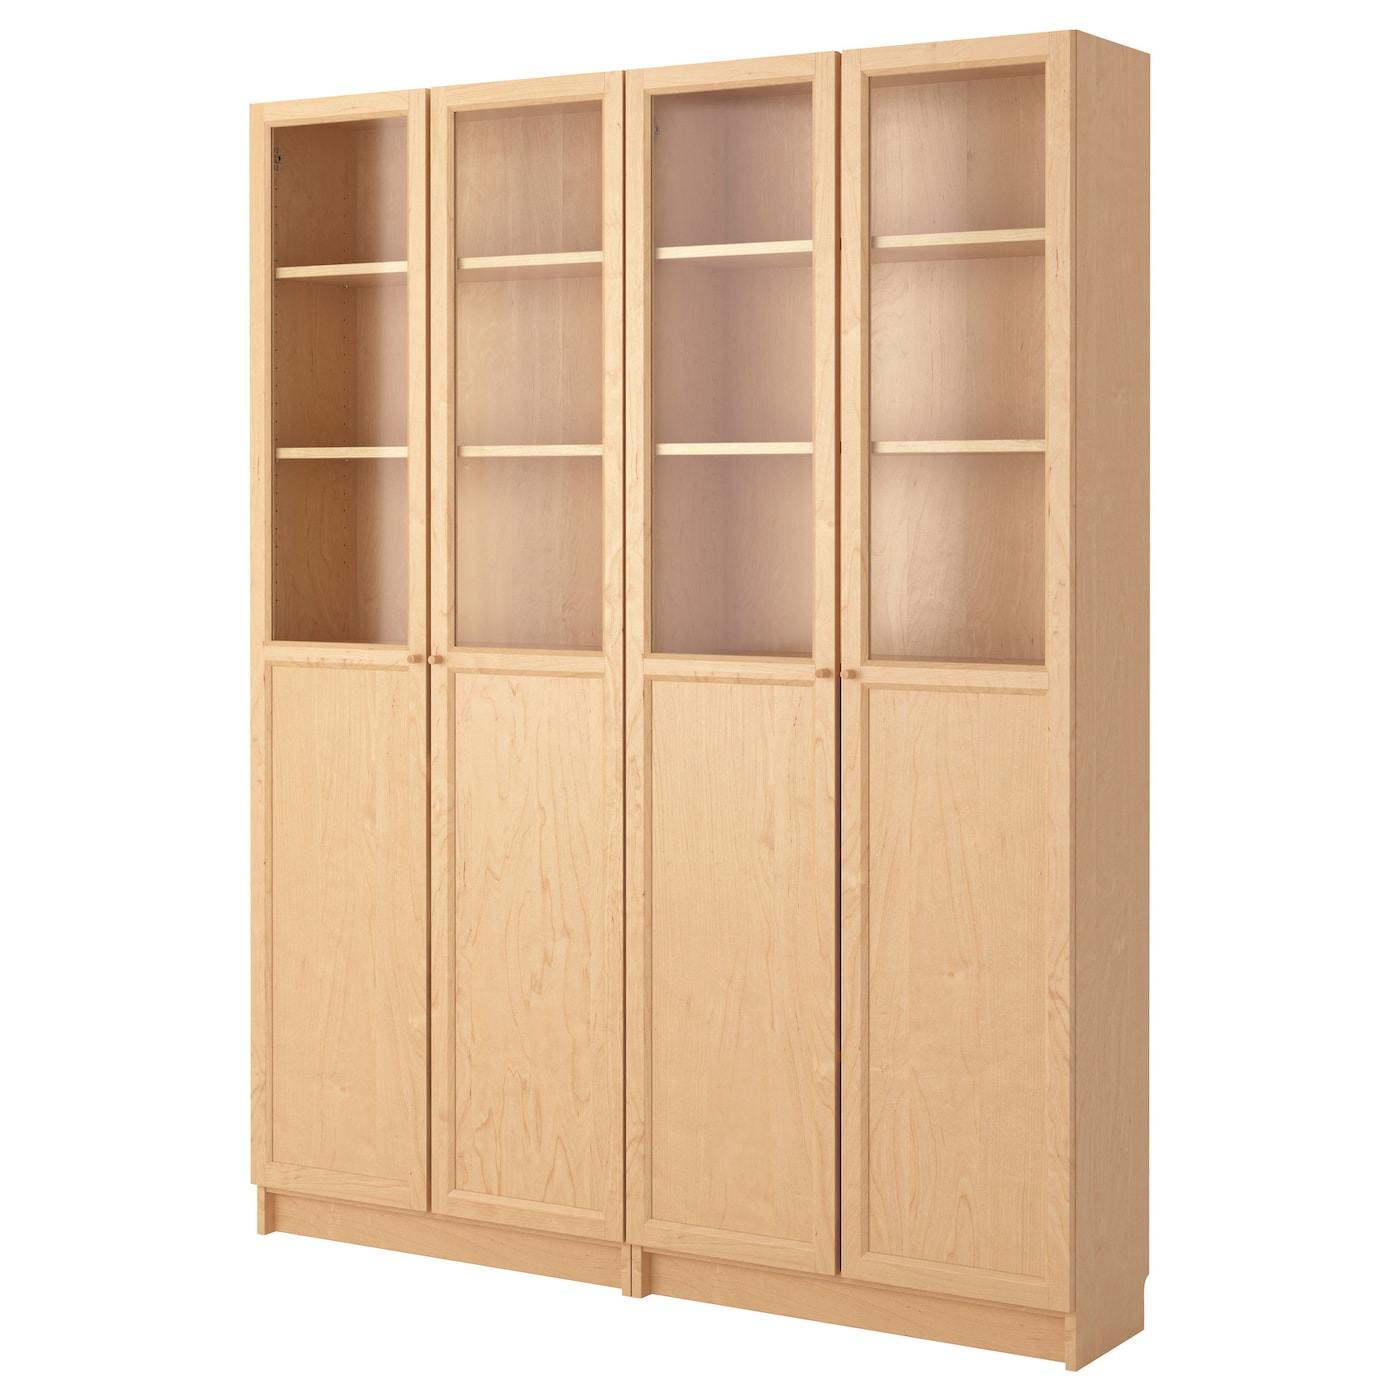 Billy oxberg bookcase birch veneer 160x202x30 cm ikea - Eclairage bibliotheque ikea ...